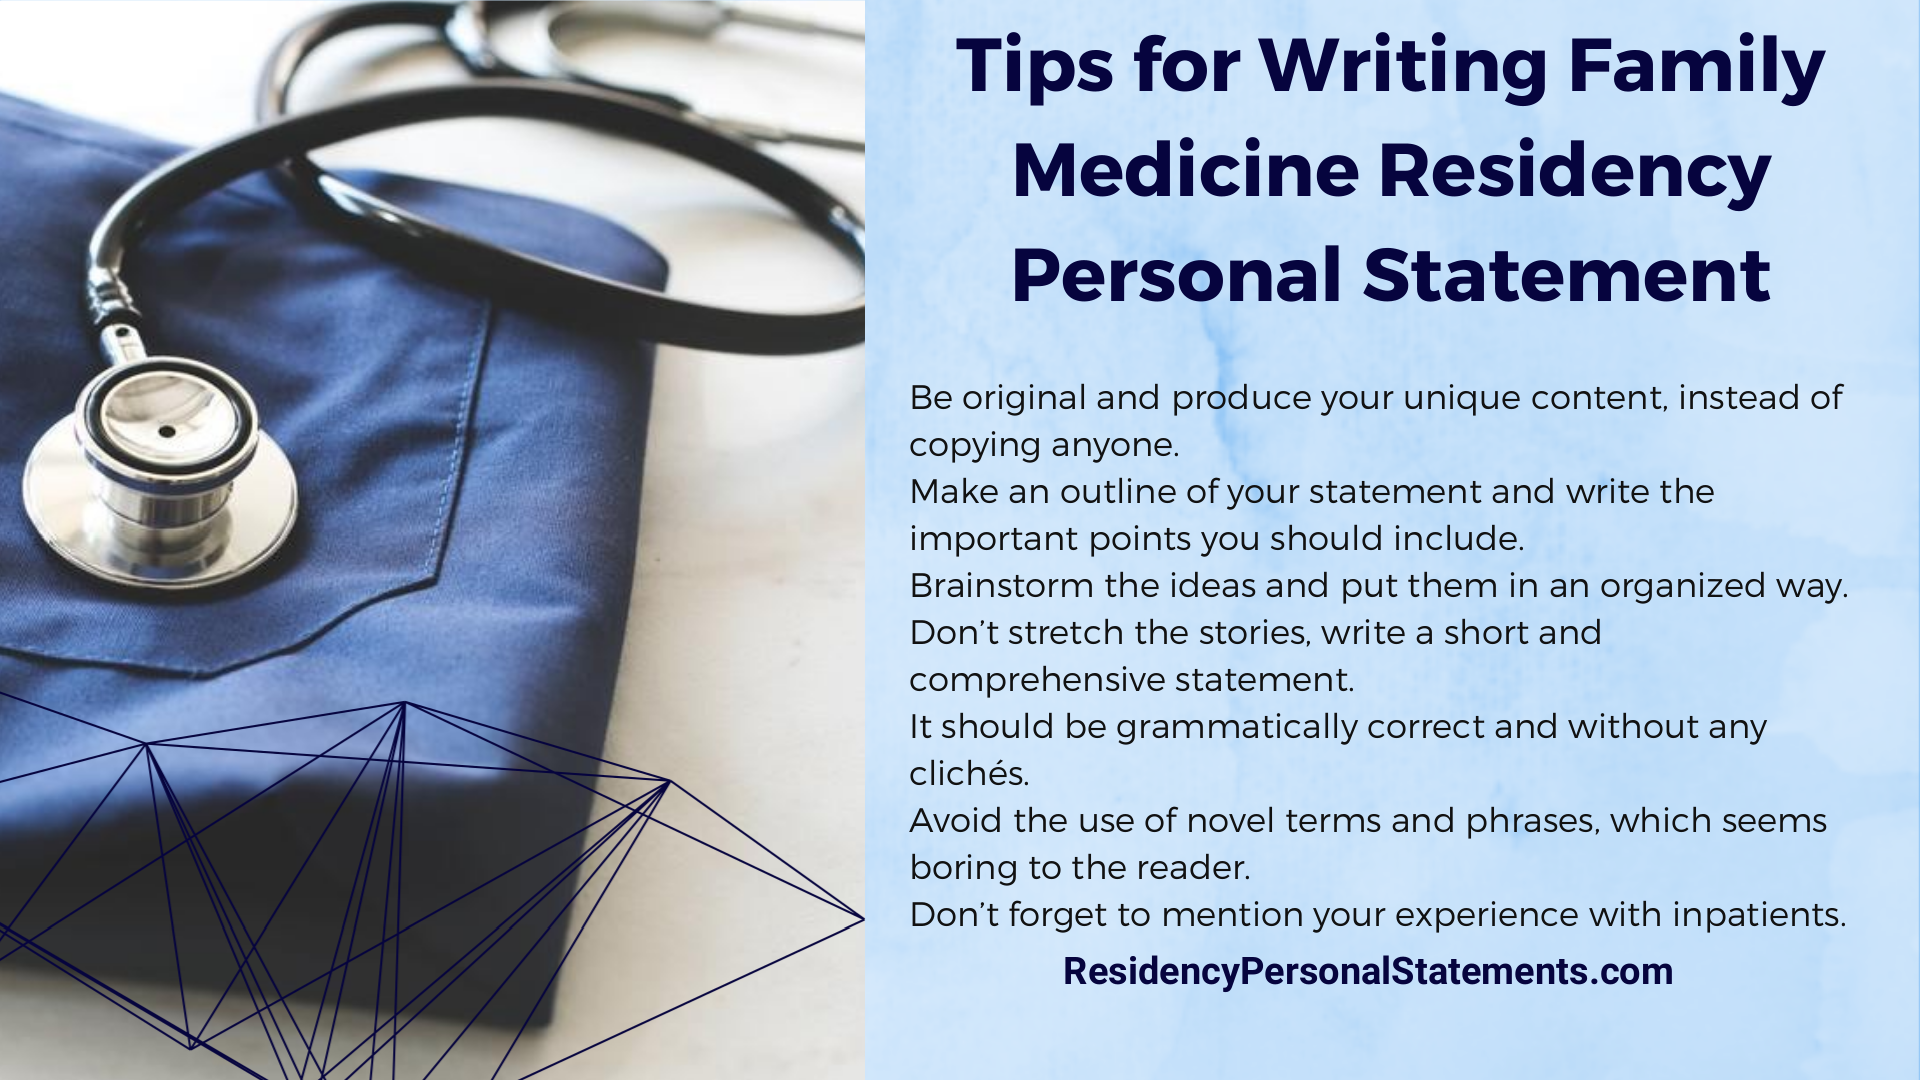 family medicine residency personal statement writing